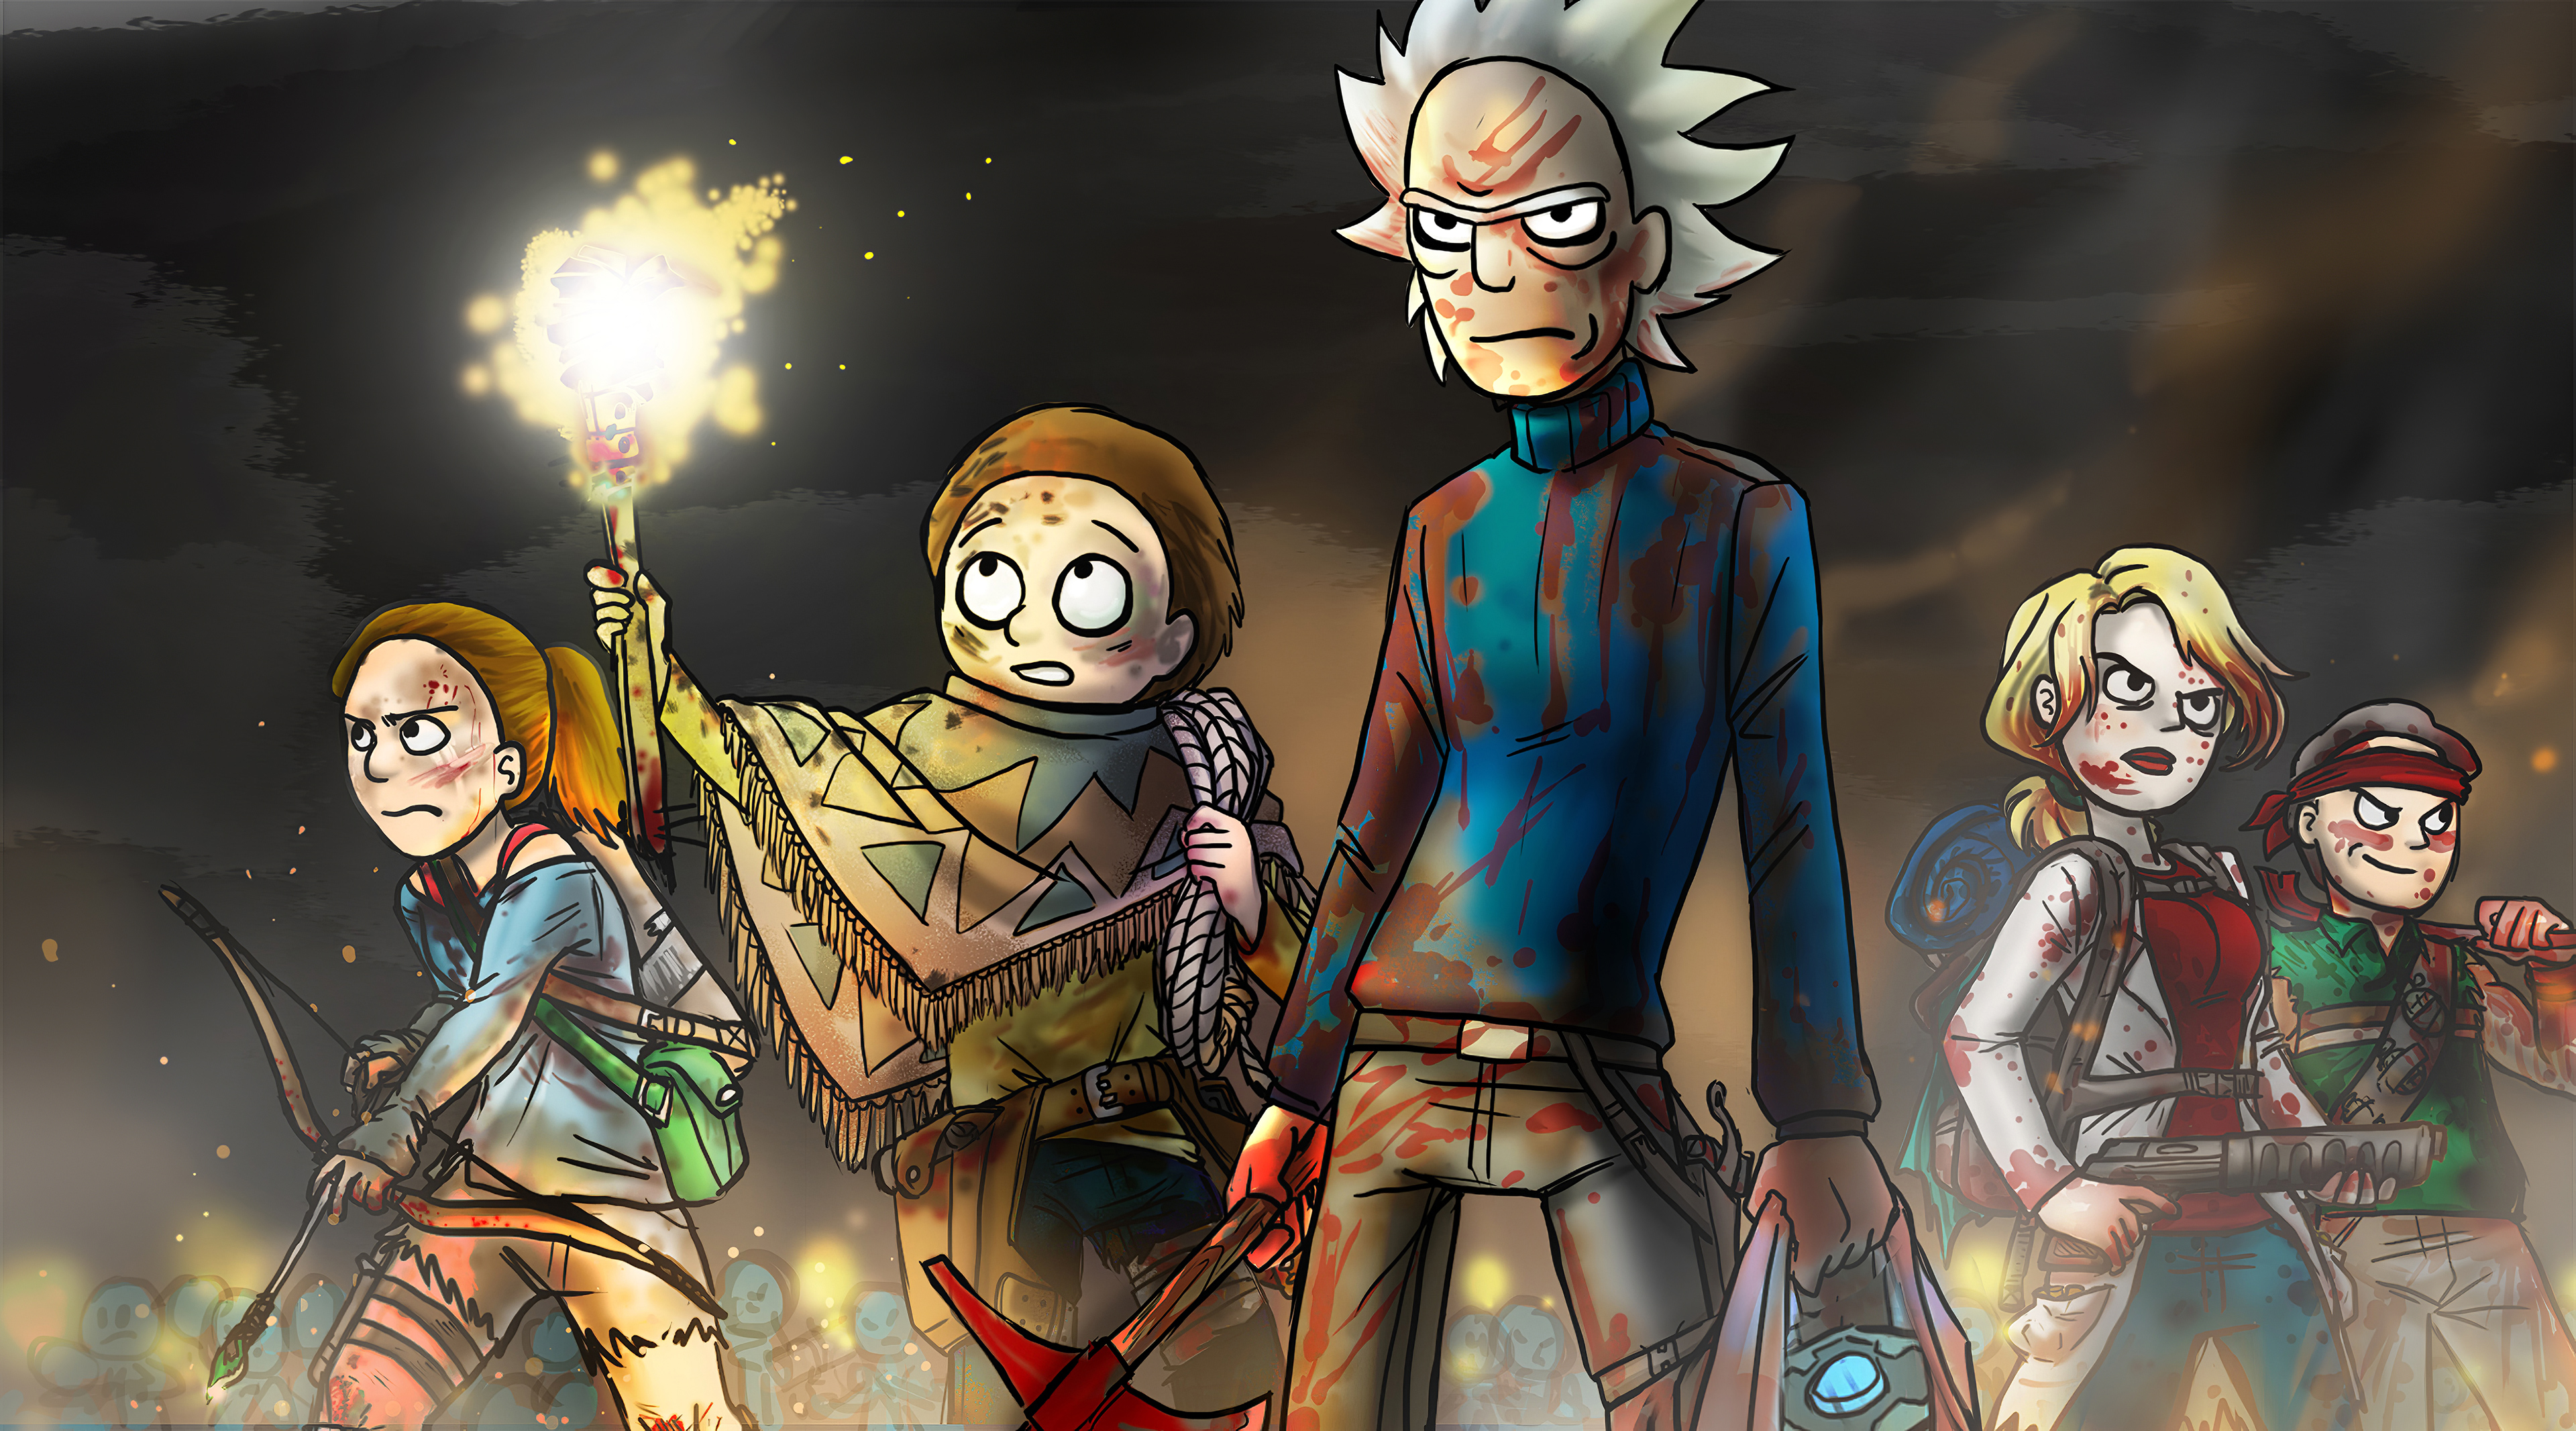 Wallpaper 4k Rick And Morty Warpath Rick And Morty Warpath 4k